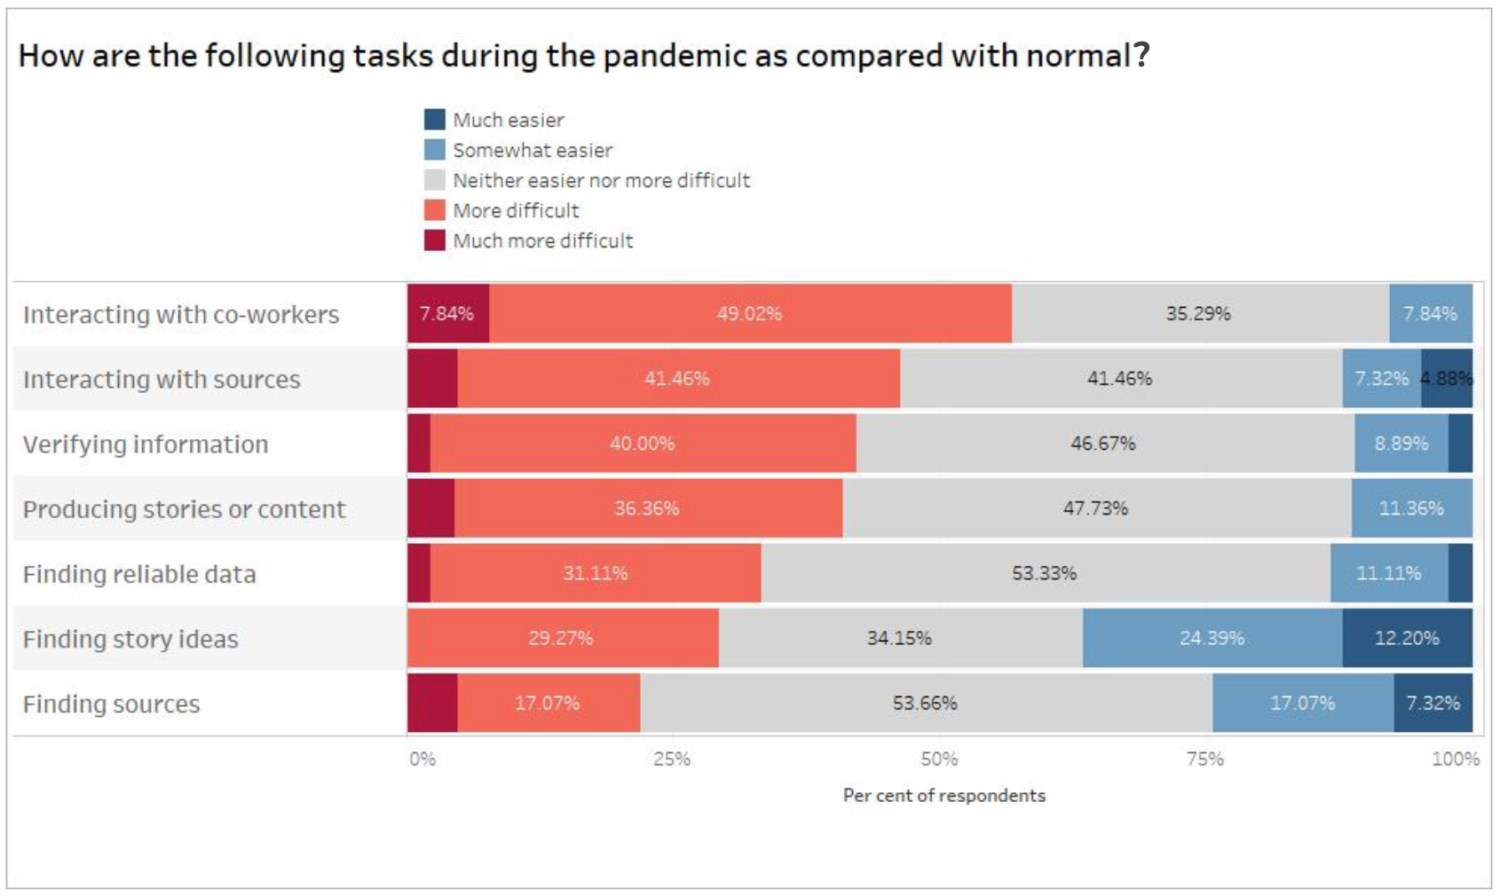 """Chart representing respondents answers to the question """"How are the following tasks during the pandemic as compared with normal"""" broken down by much easier, somewhat easier, neither easier nor more difficult, more difficult and much more difficult. The tasks are: interacting with co-workers, interacting with sources, verifying information, producing stories or content, finding reliable data, finding story ideas and finding sources"""